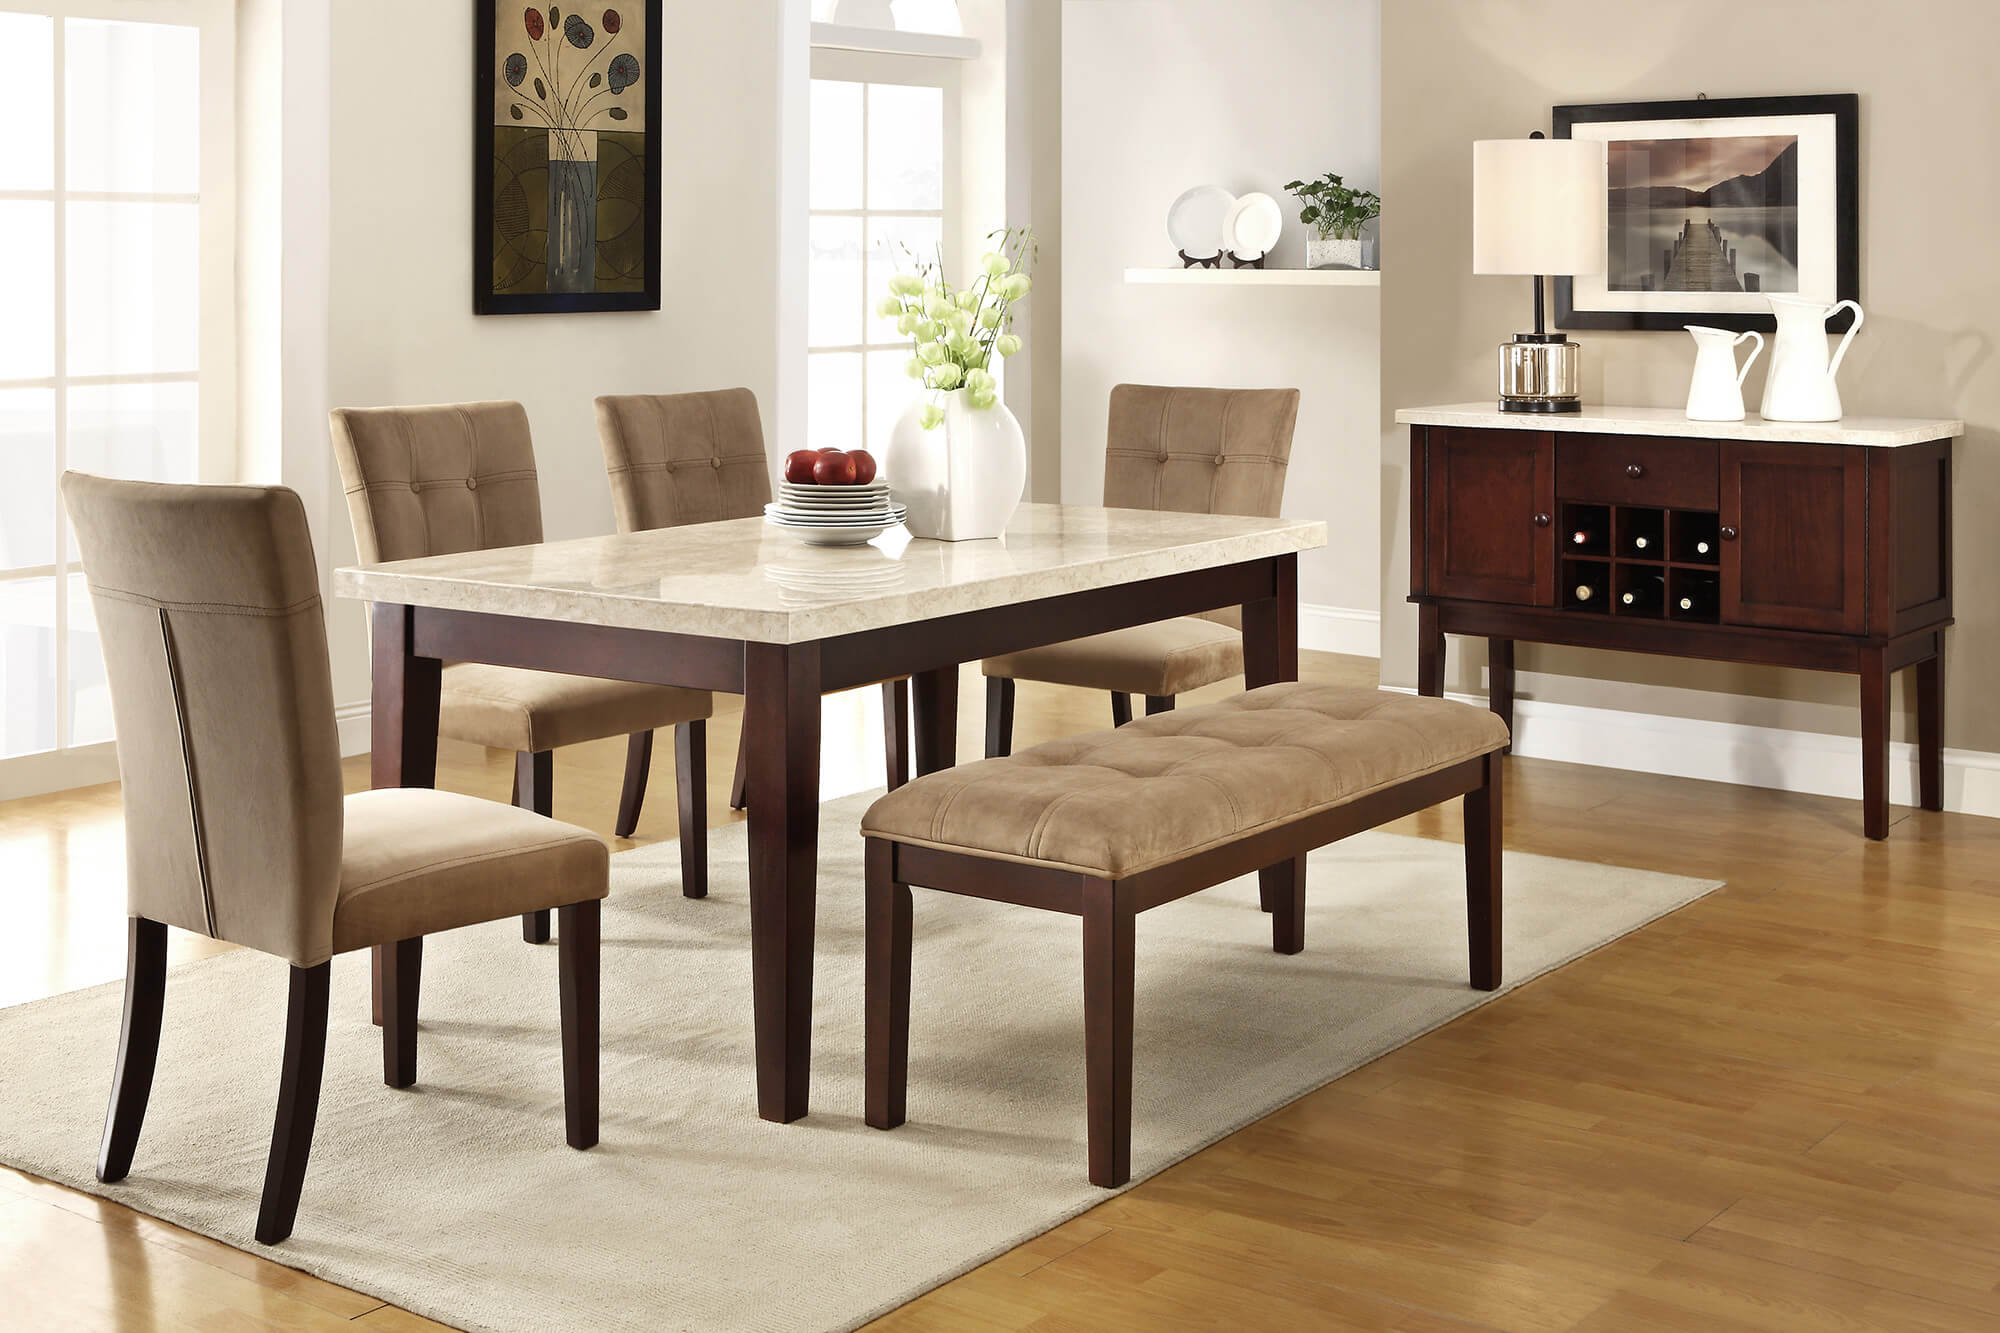 Hereu0027s a 6 piece rubberwood dining set with faux marble table top with tan upholstery for & 26 Dining Room Sets (Big and Small) with Bench Seating (2018)